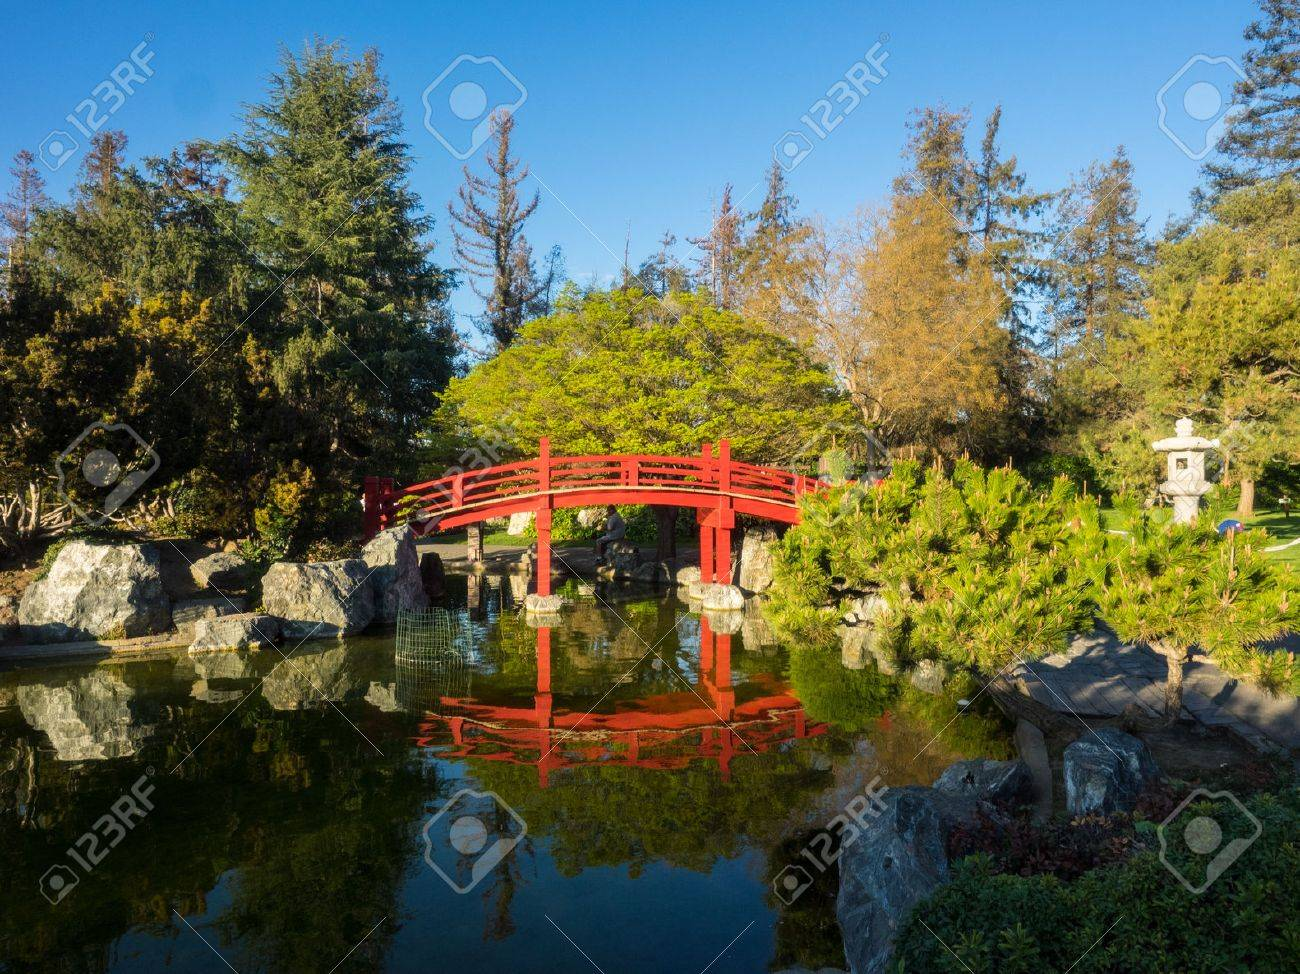 japanese friendship garden is a walled section of kelley park..